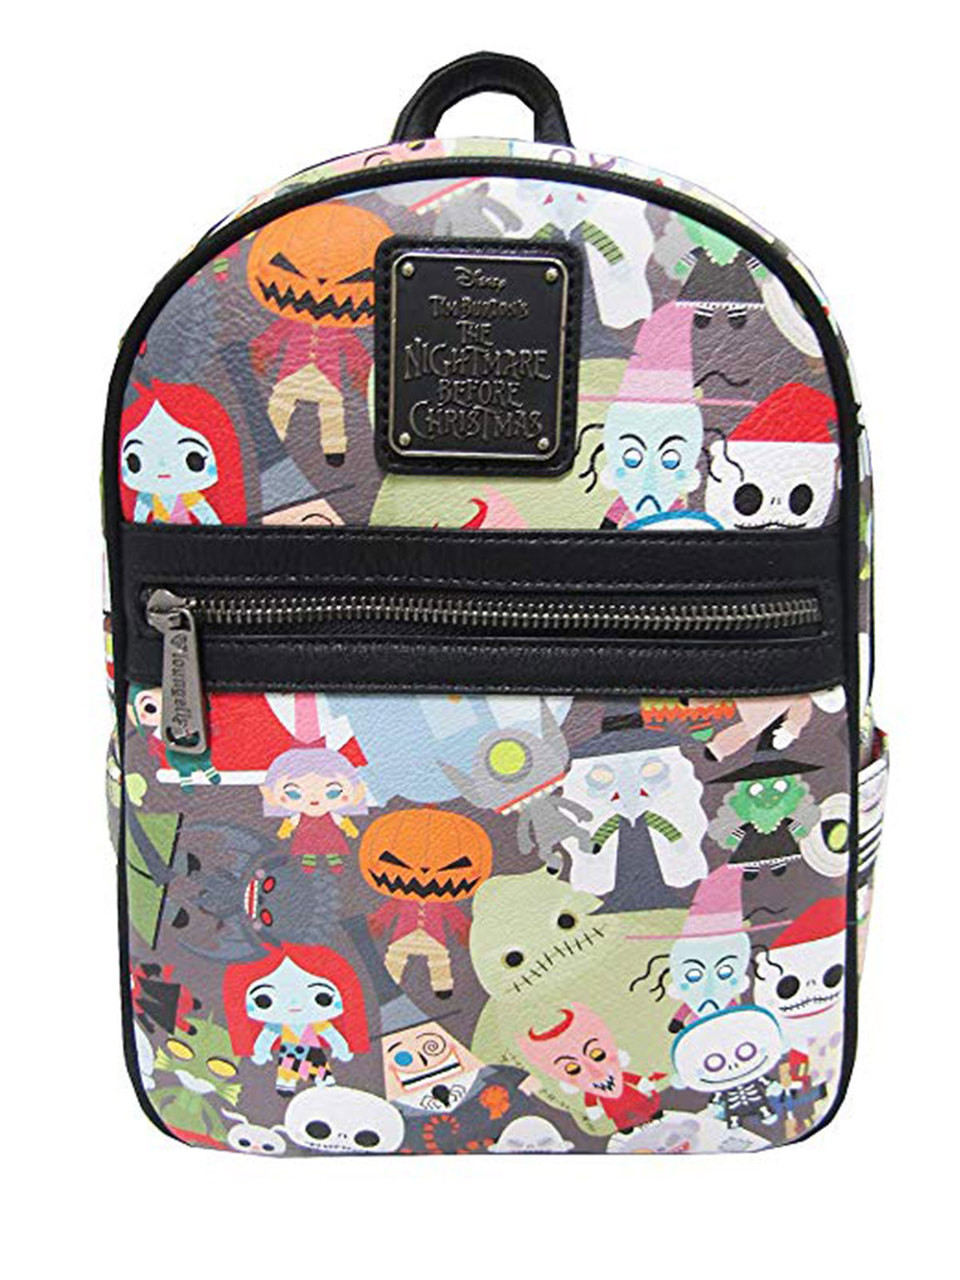 fec3d7929ac Loungefly x Nightmare Before Christmas Kawaii Character Backpack ...